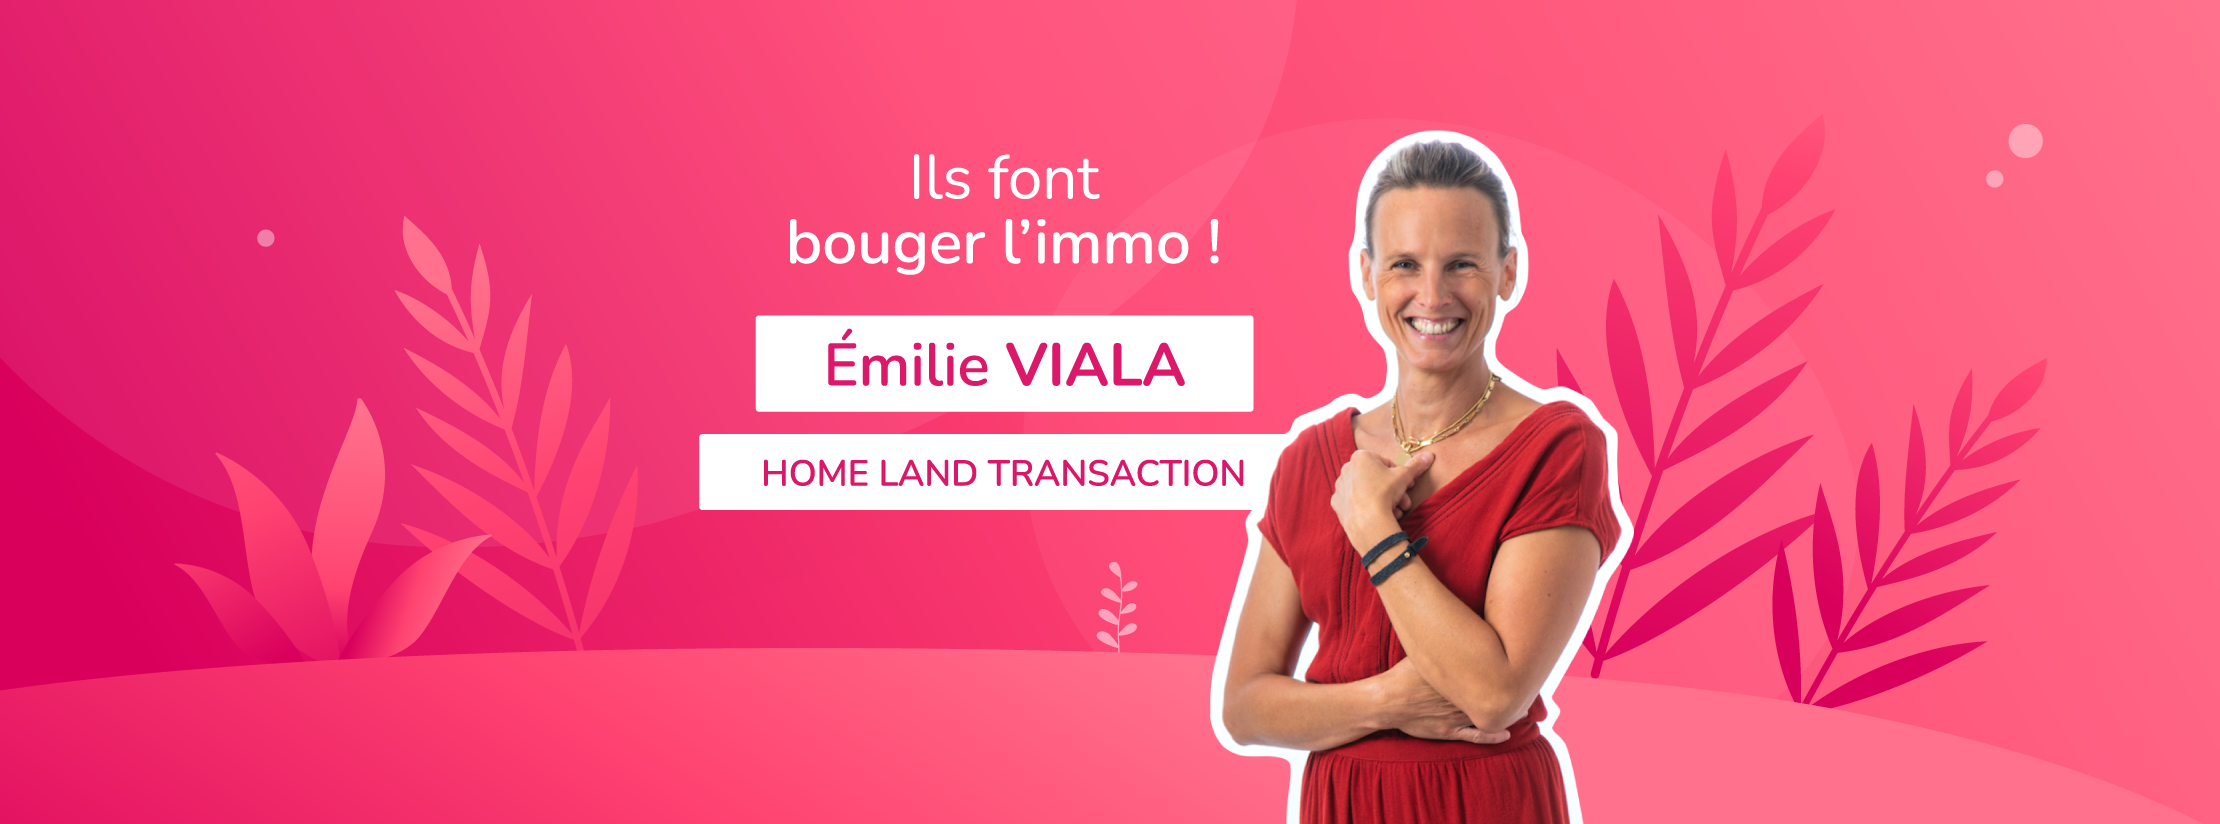 Ils font bouger l'immo